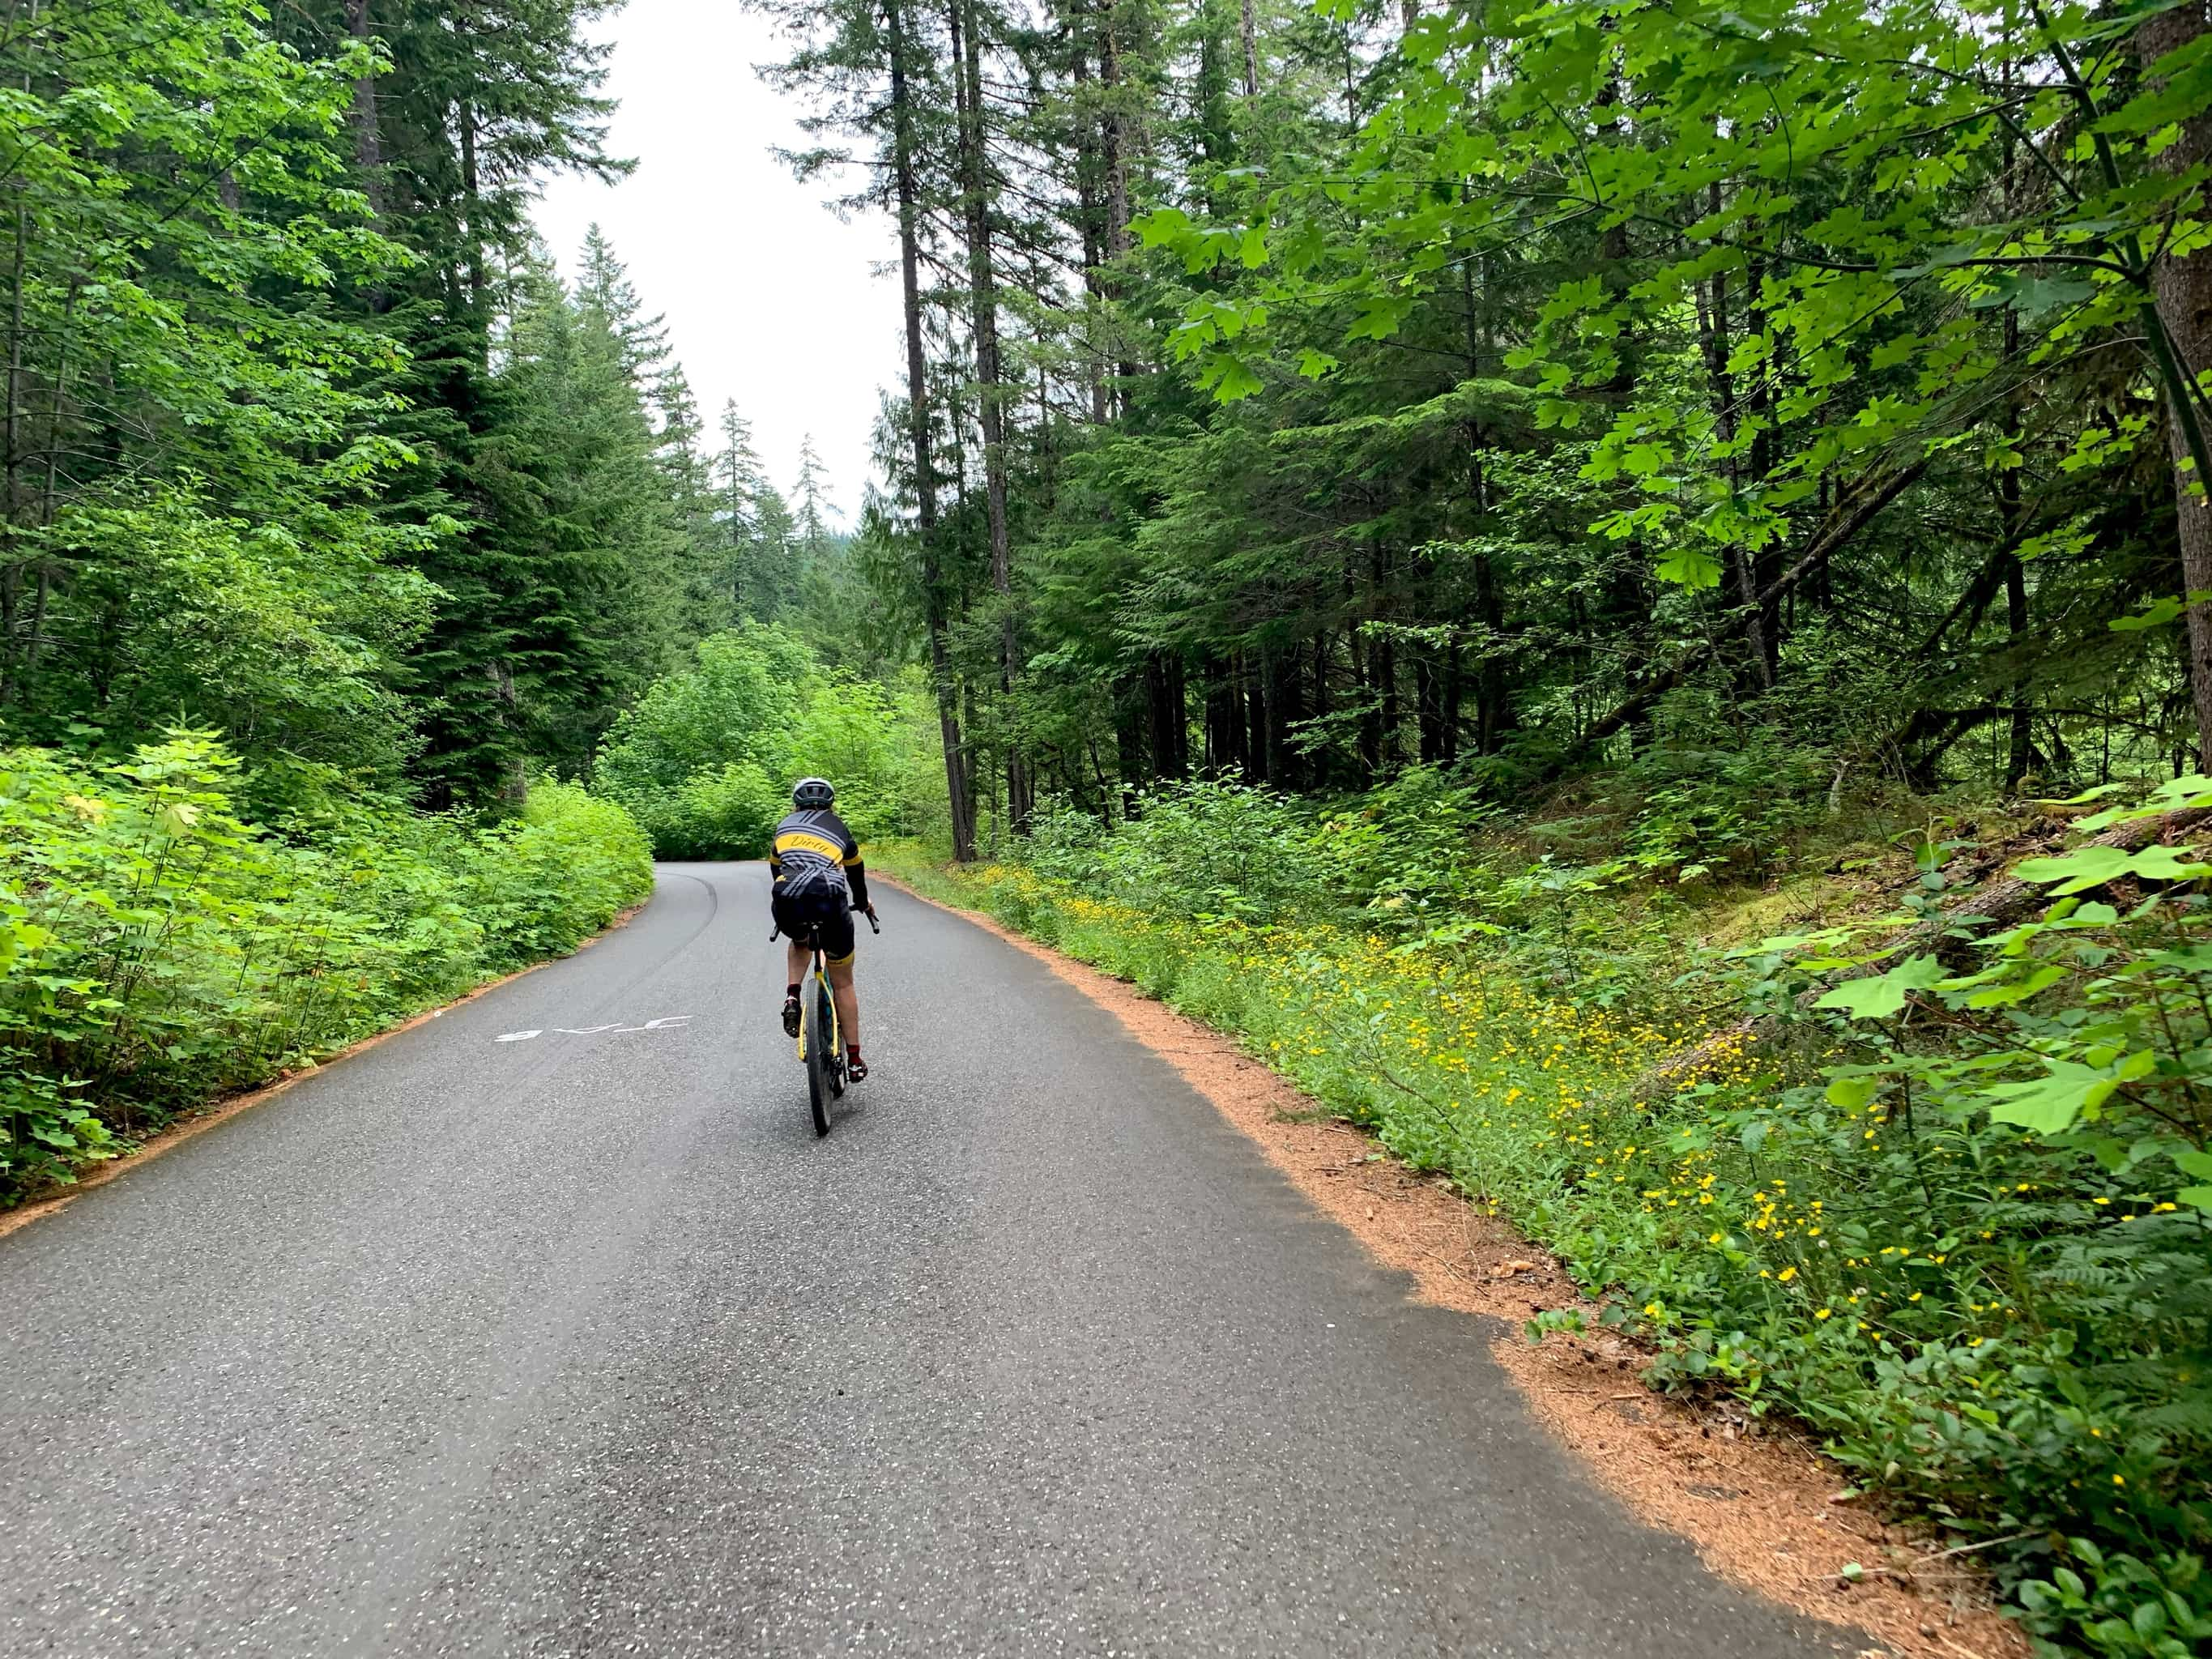 Bike rider on NF-60 / Panther Creek road in Gifford Pinchot National forest.